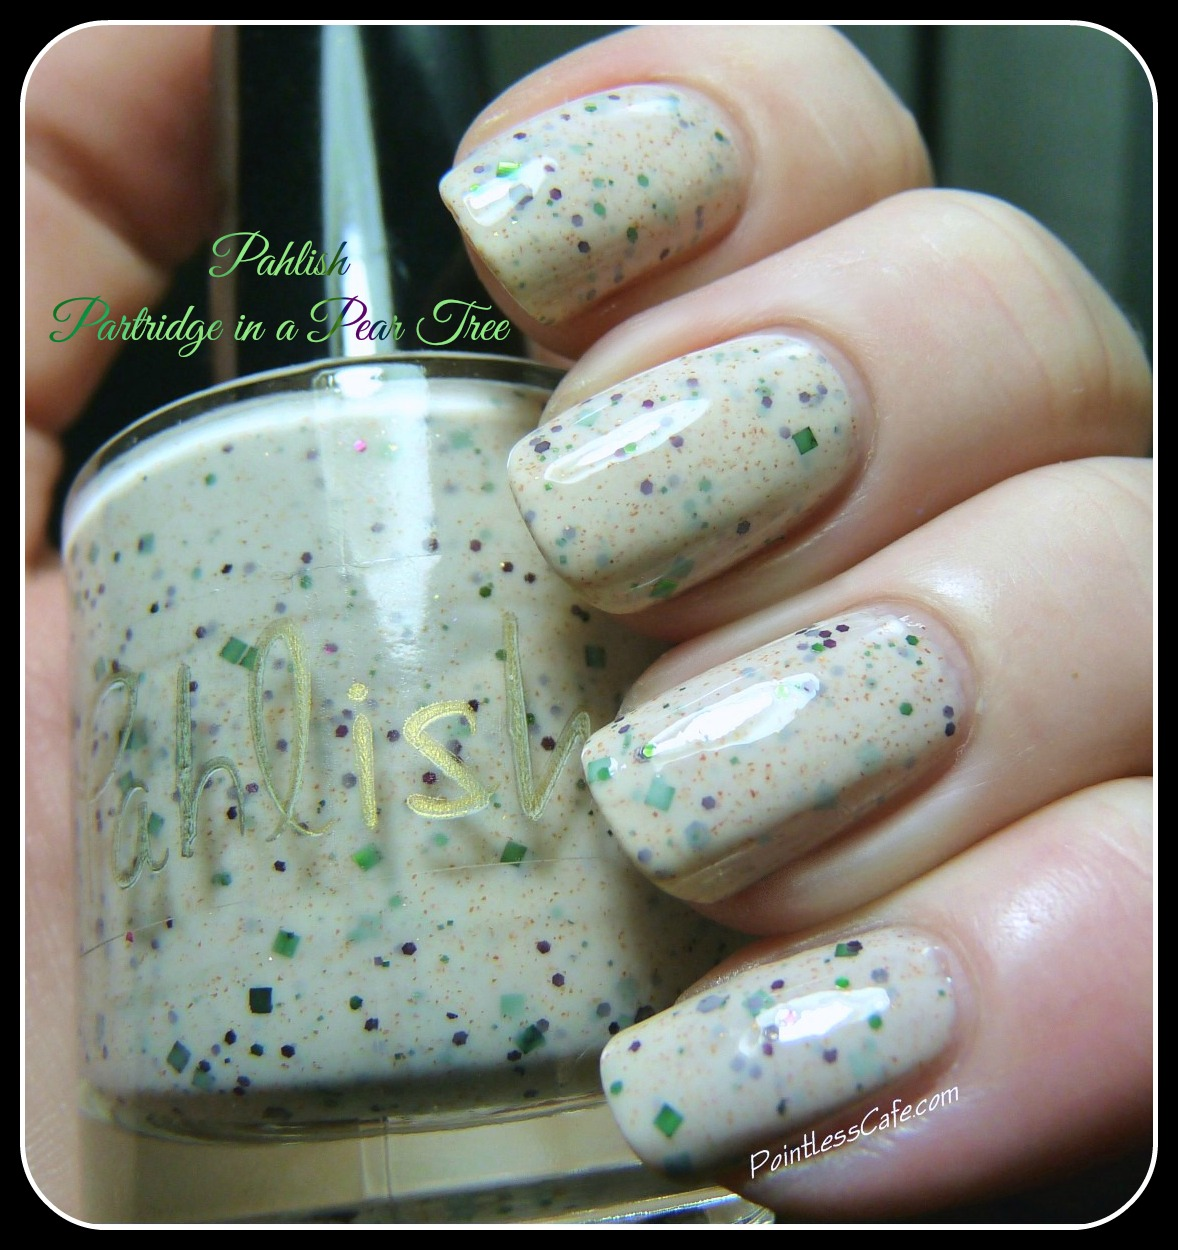 Nail of the Day: Pahlish Partridge in a Pear Tree | Pointless Cafe